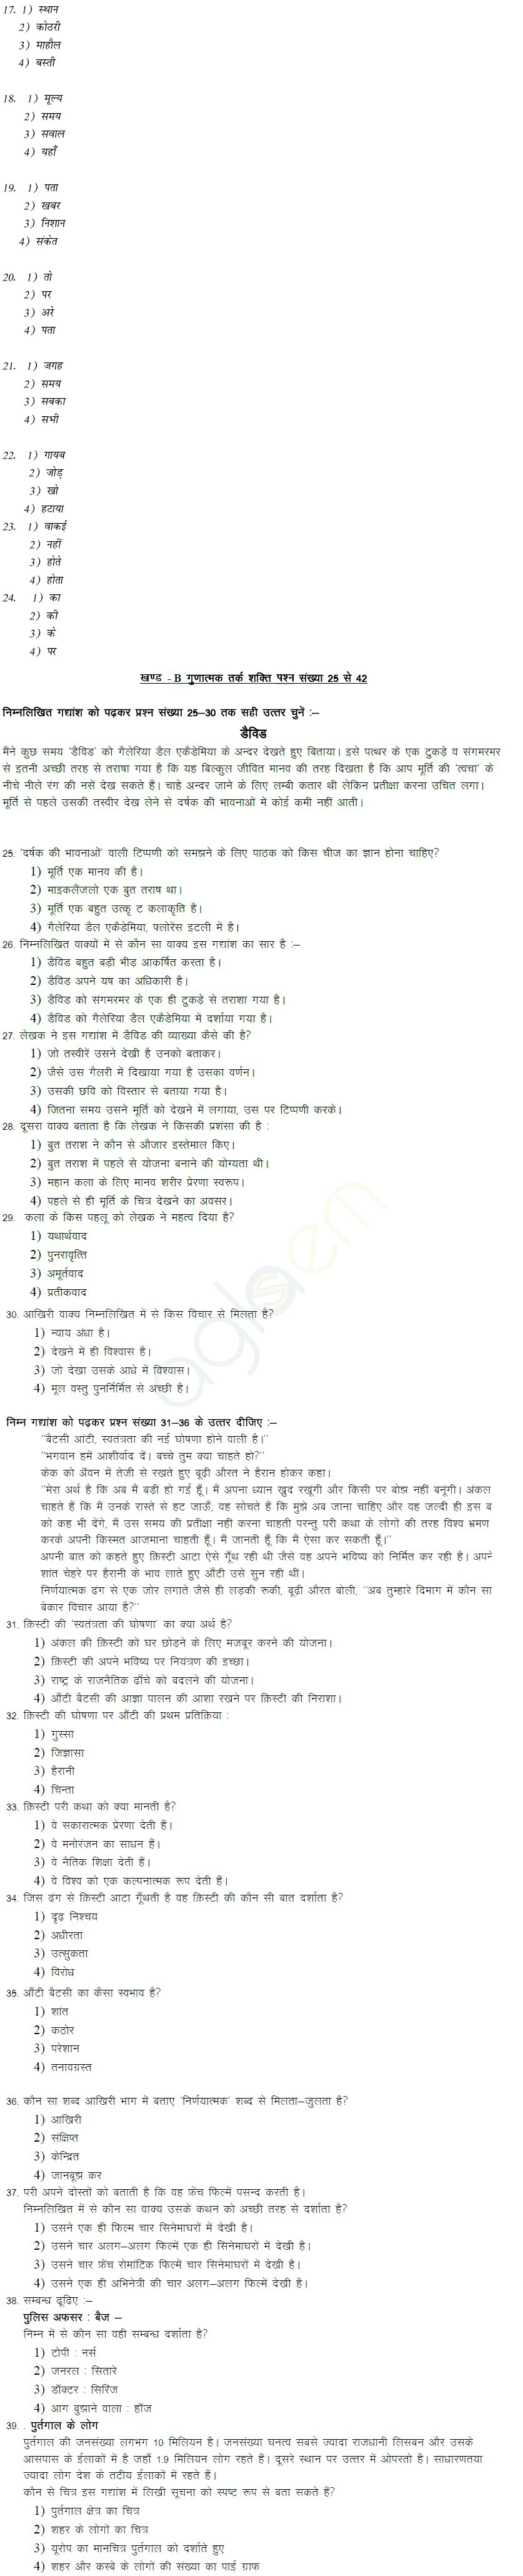 Class XI CBSE Sample Papers 2014 (in Hindi)